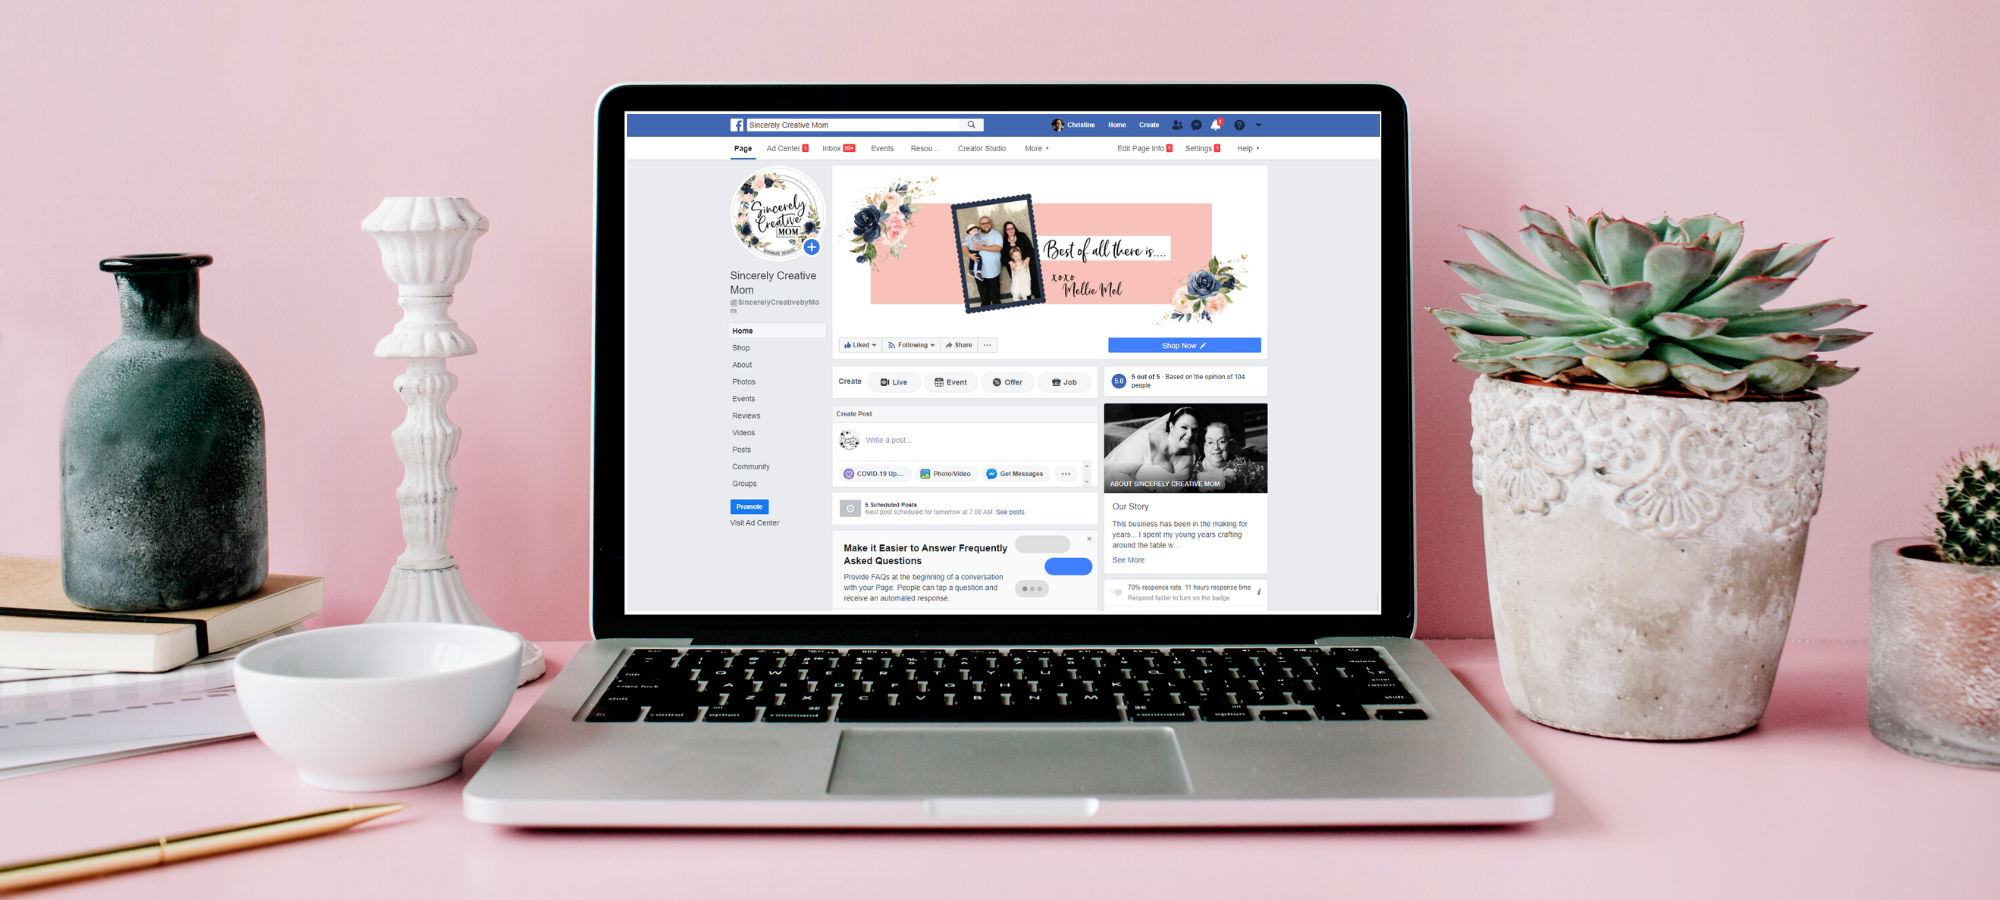 image of a laptop showing the sincerely creative mom facebook page